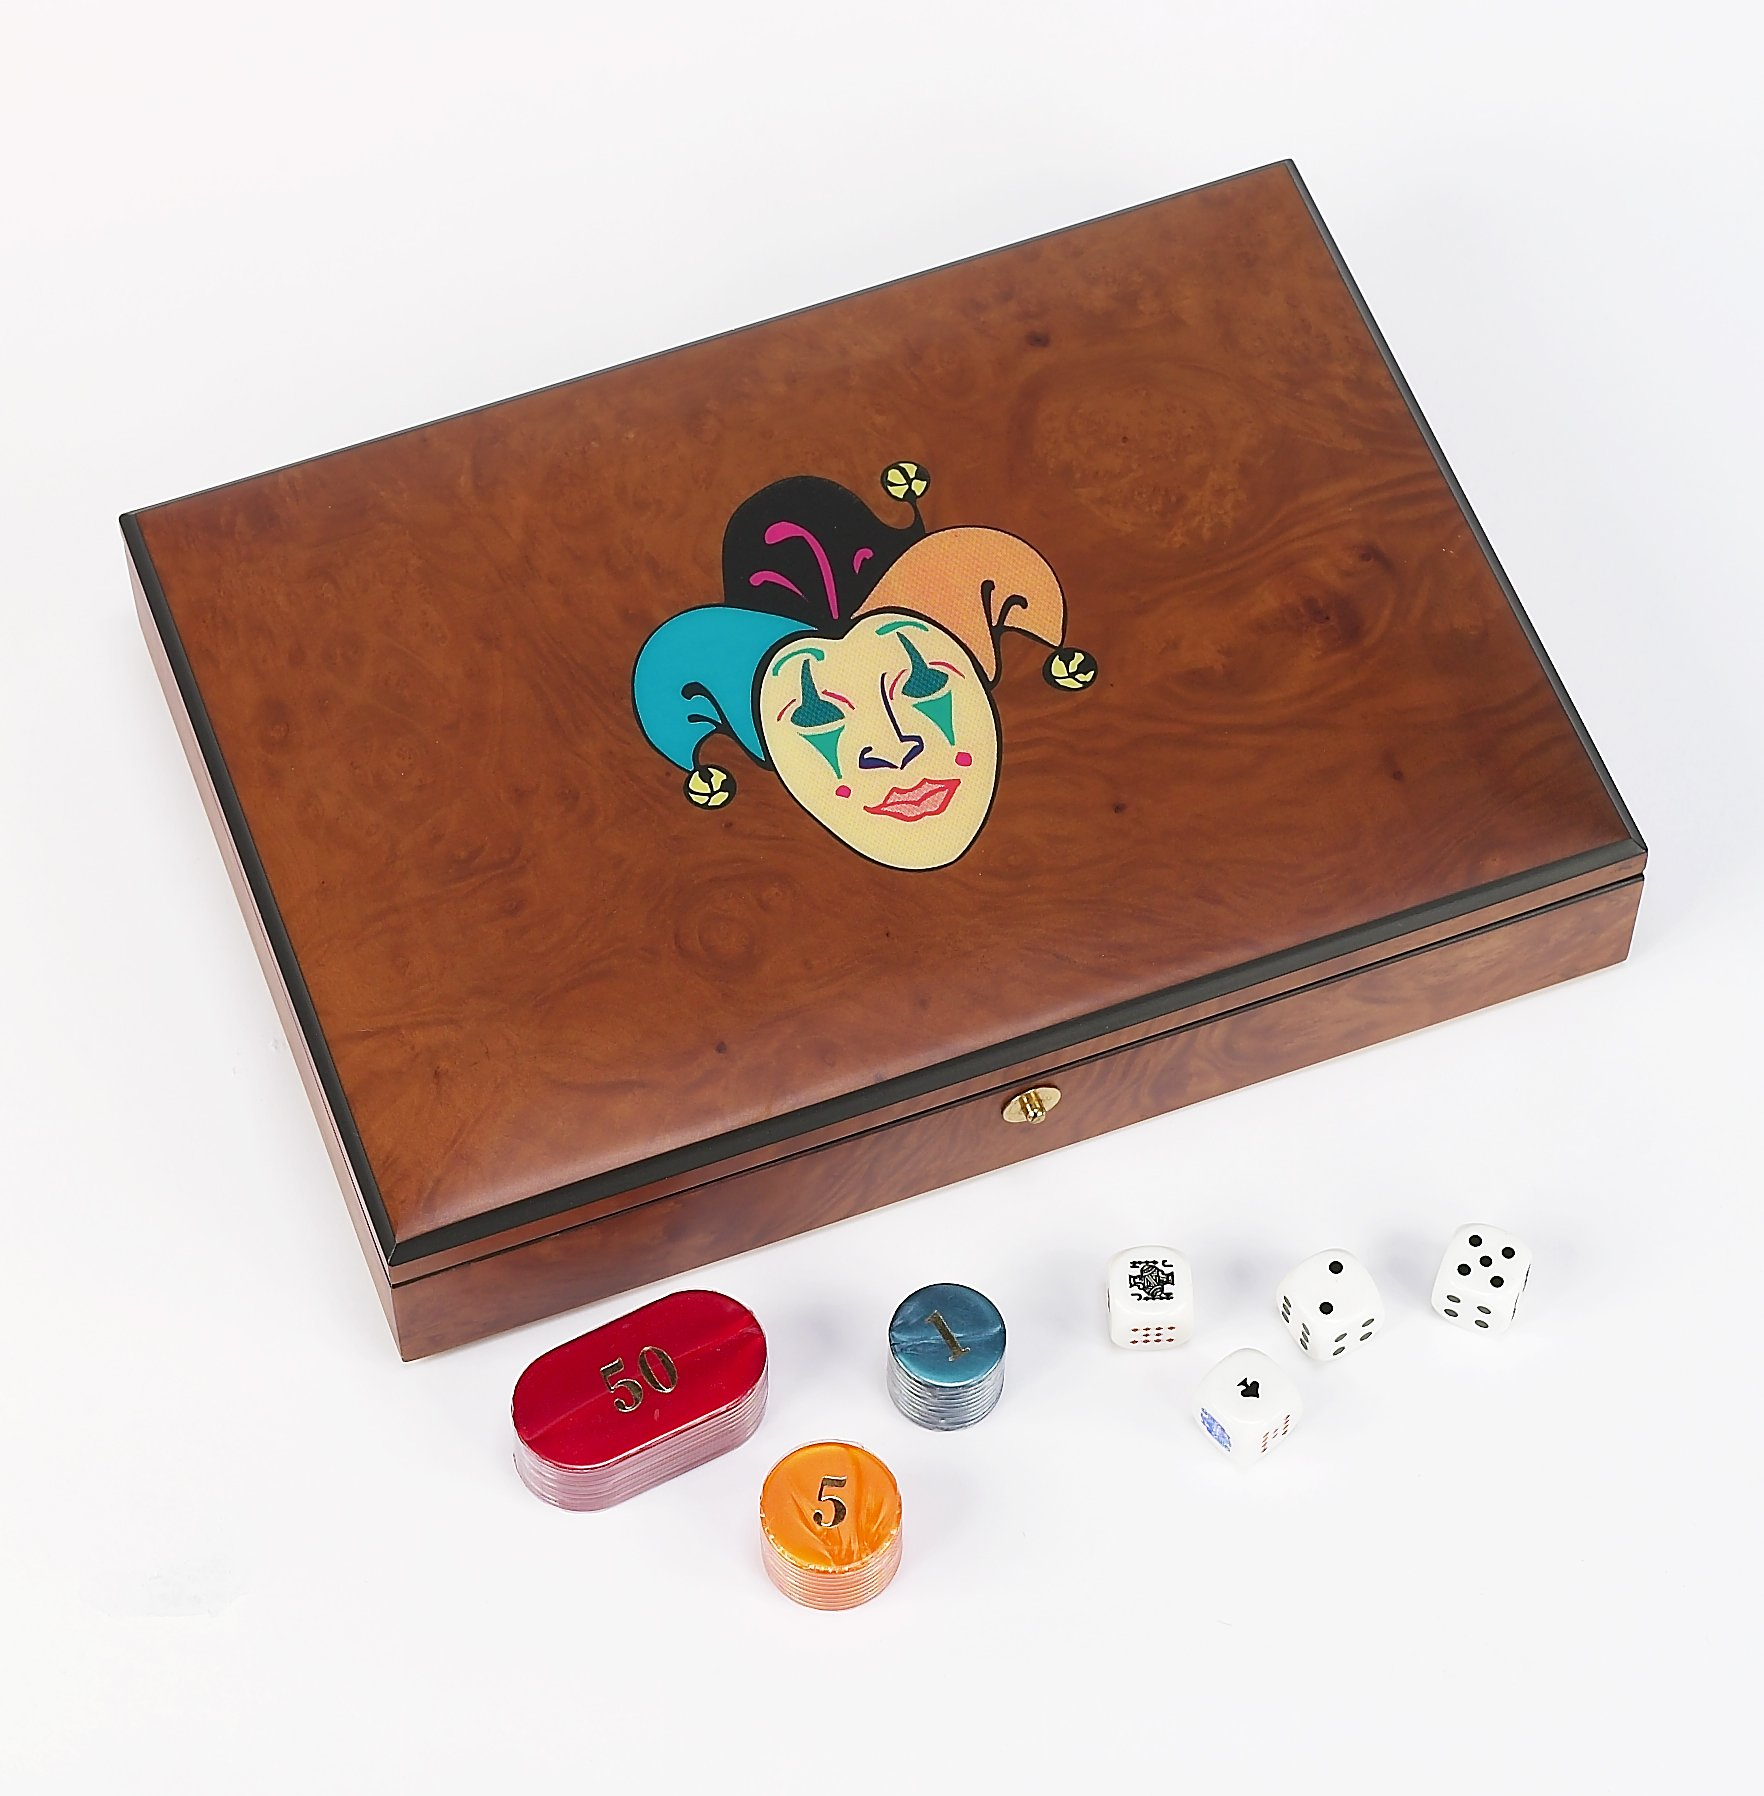 Bello Games Collezioni - Marsala Poker Chips and Card Set From Italy by Bello Games New York, Inc.